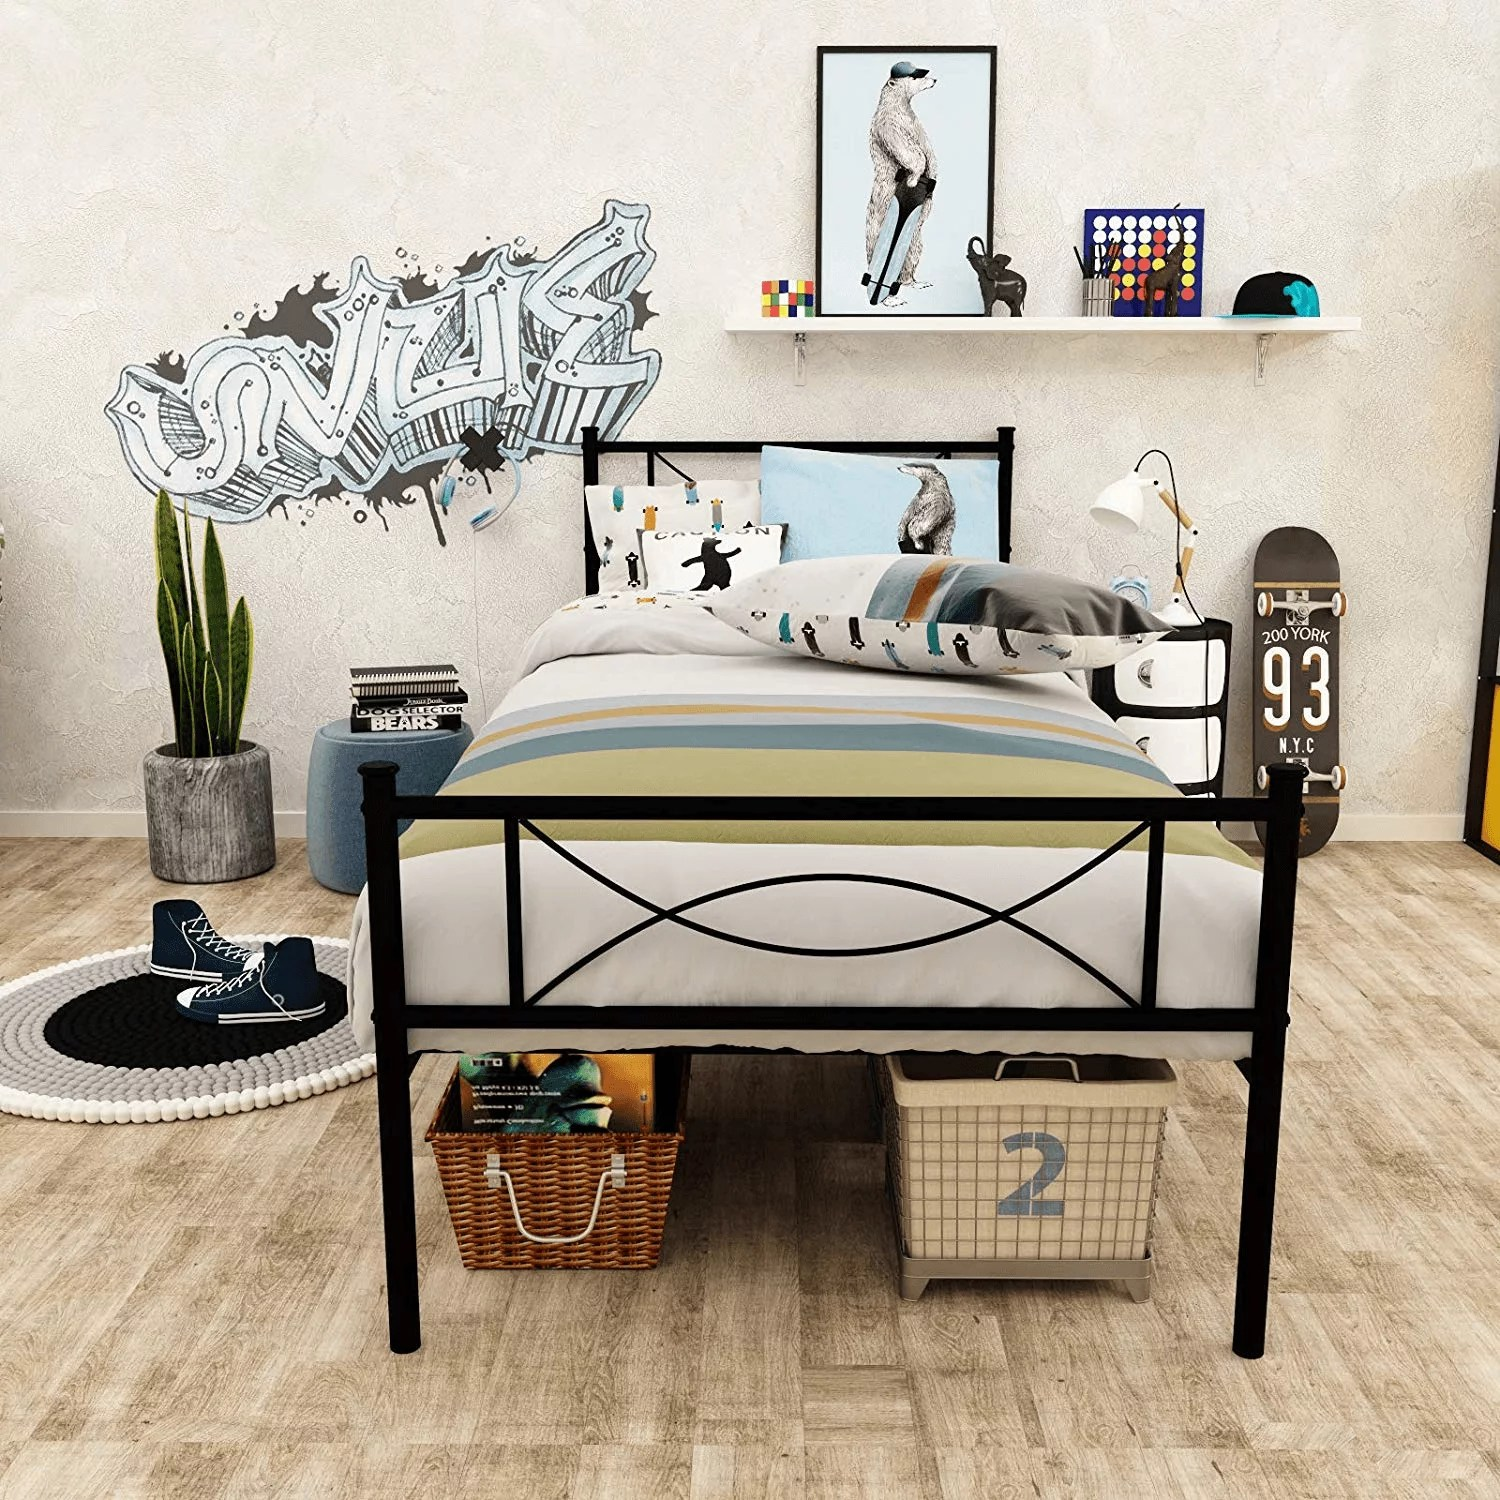 easy assembly 12 7inch high metal platform bed frame with bowknot headboards size twin